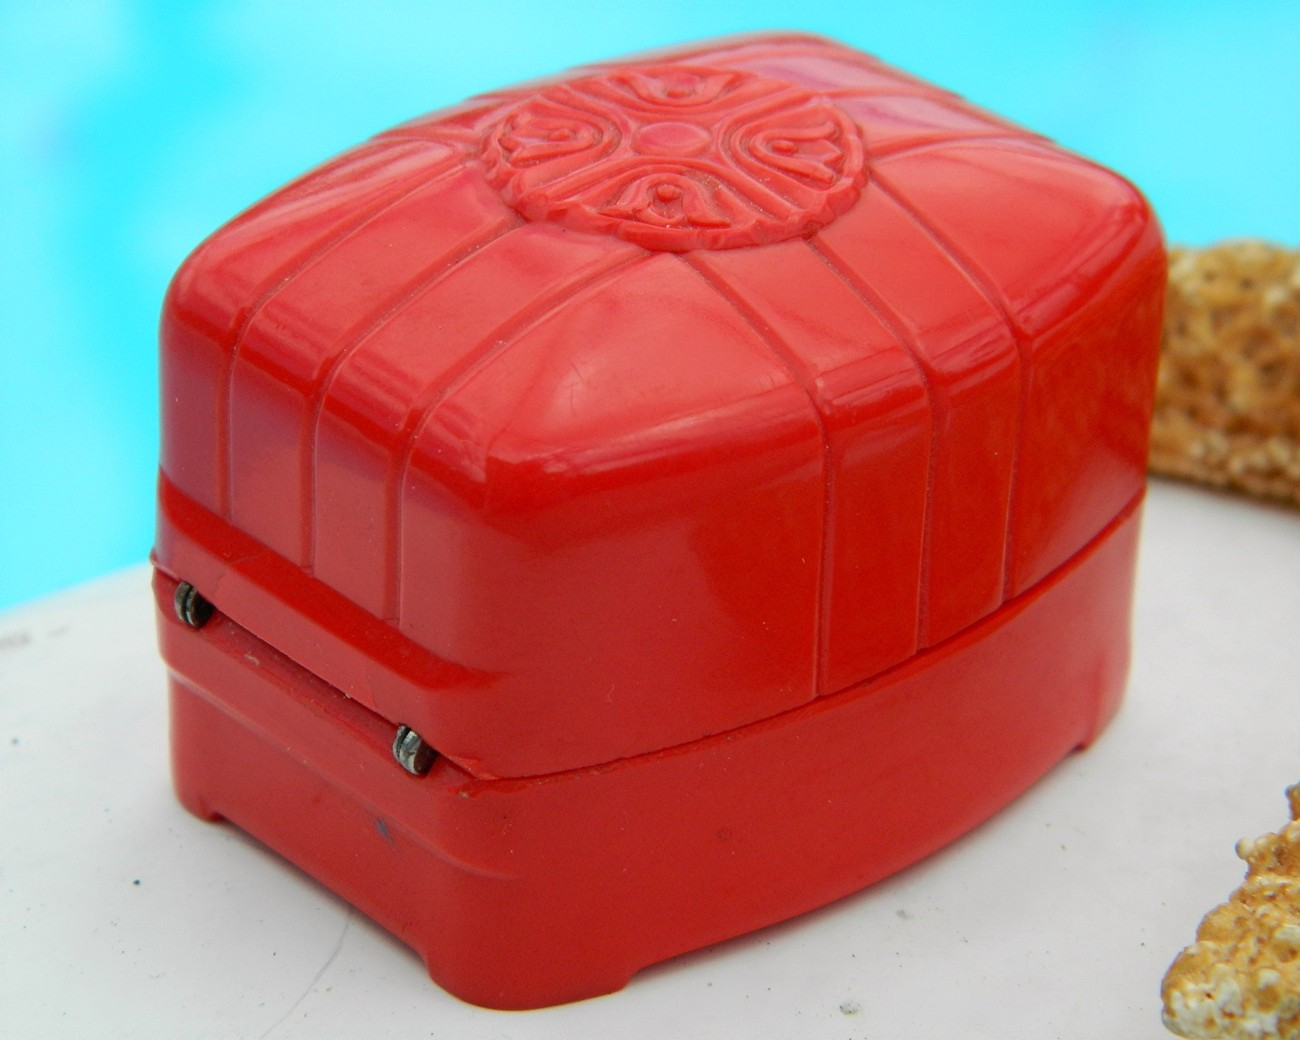 Vintage_red_ring_box_celluloid_art_deco_plastic